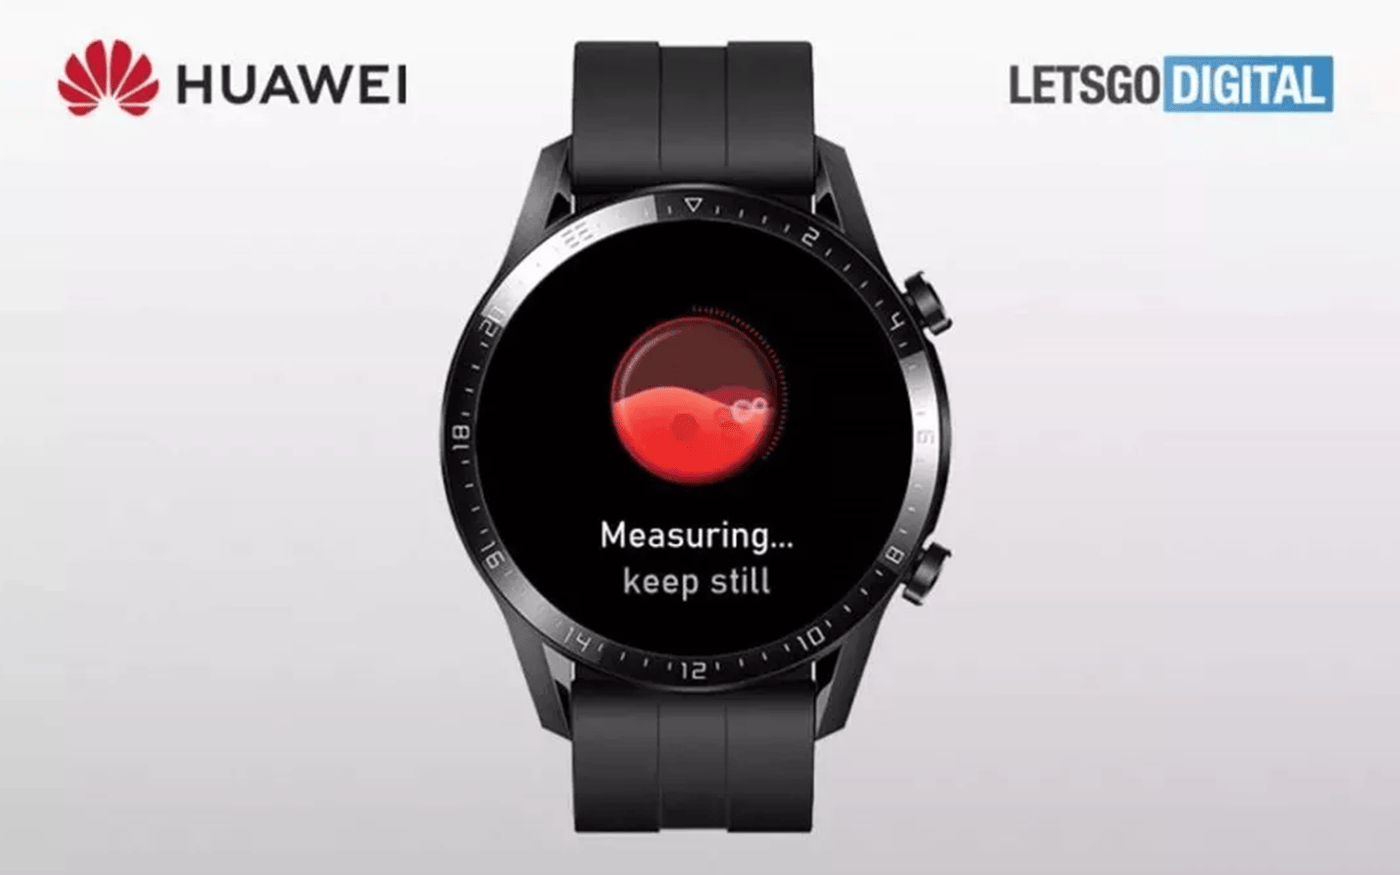 Patentes revelam interface do Watch GT2 com o novo sistema operacional da Huawei